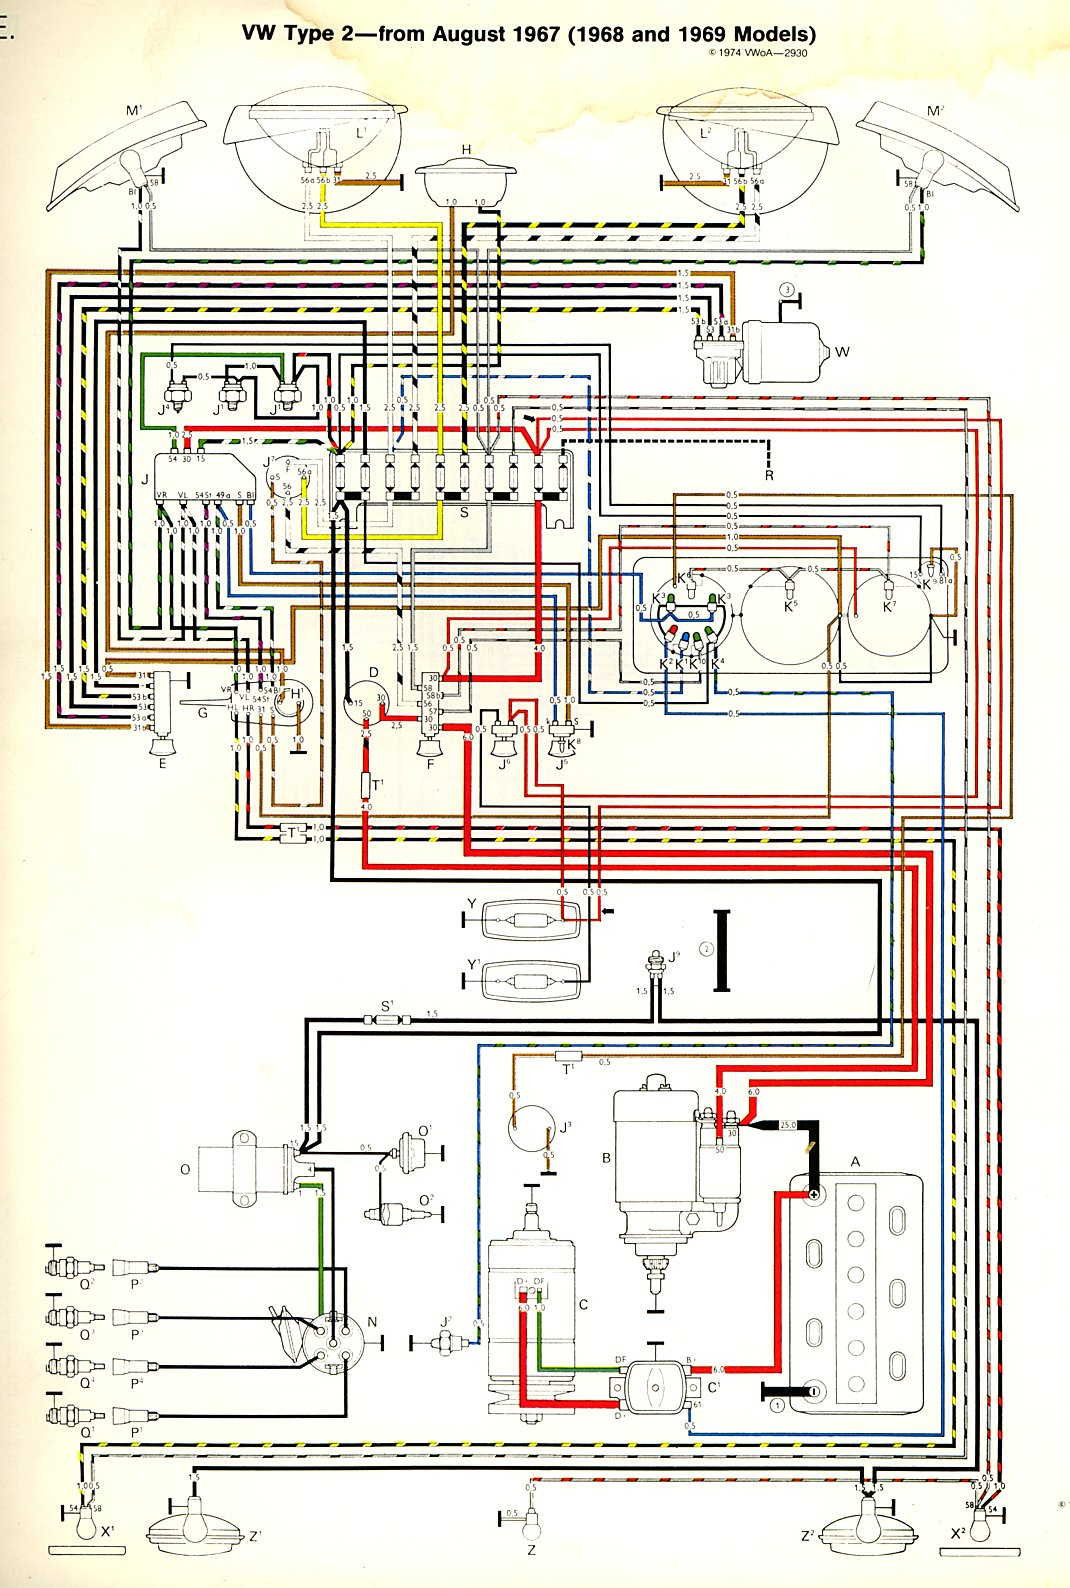 1968 69 bus wiring diagram